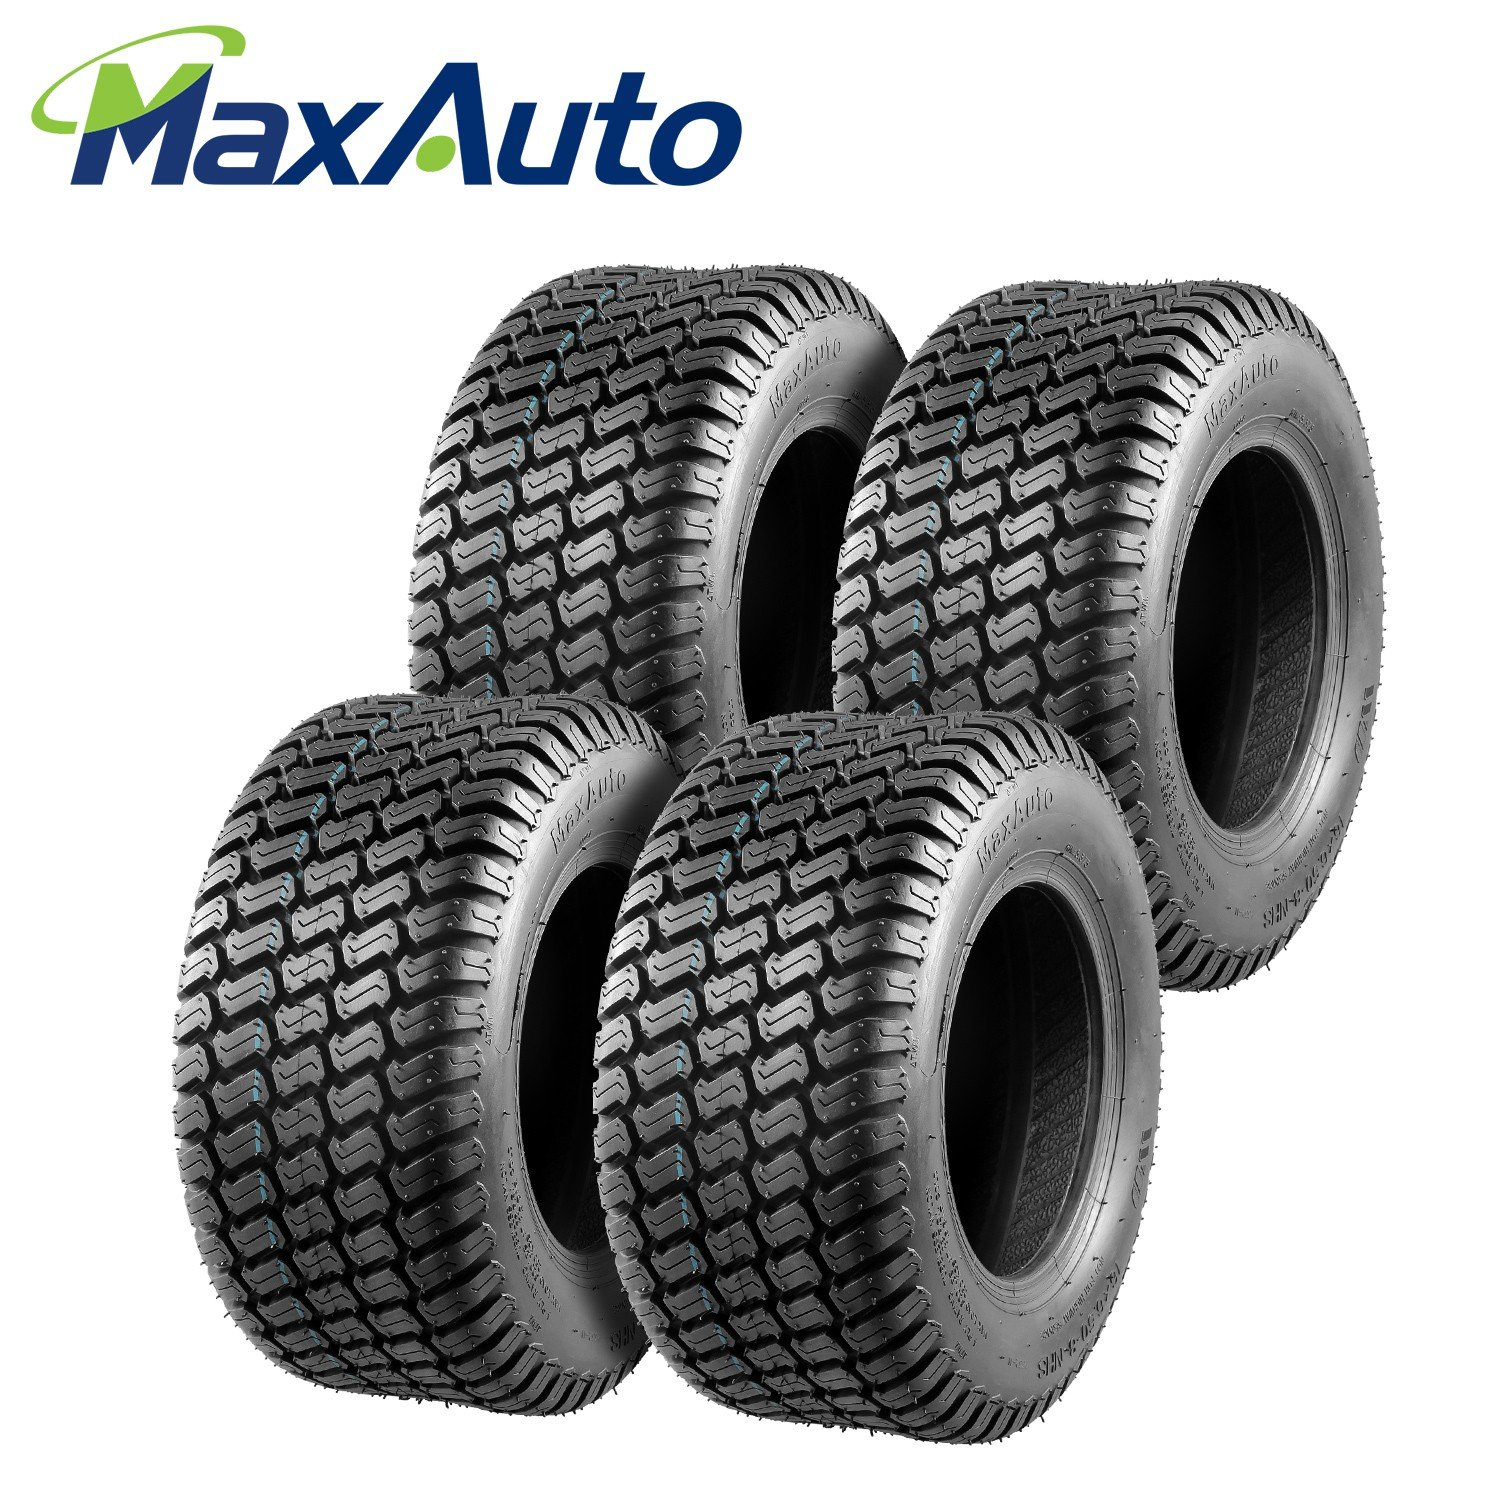 MaxAuto 16/6.50-8 16-6.5-8 Turf Tires 4 Ply Tubeless Lawn Mower Tractor 16x6.5x8(Pack of 2) PartsSquare